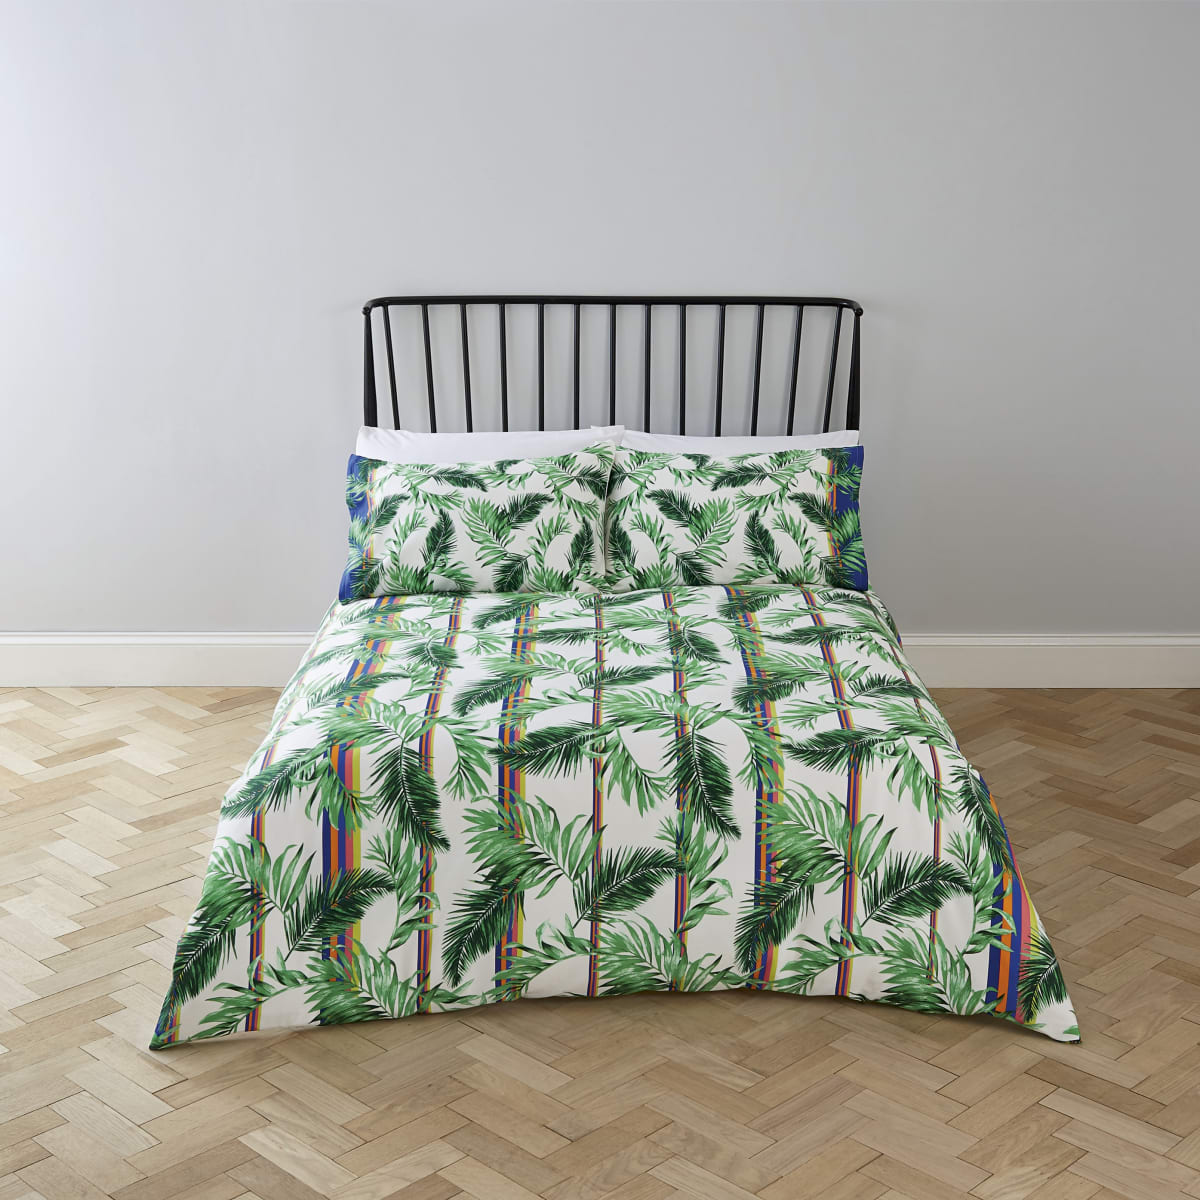 Cream palm print double duvet bed set